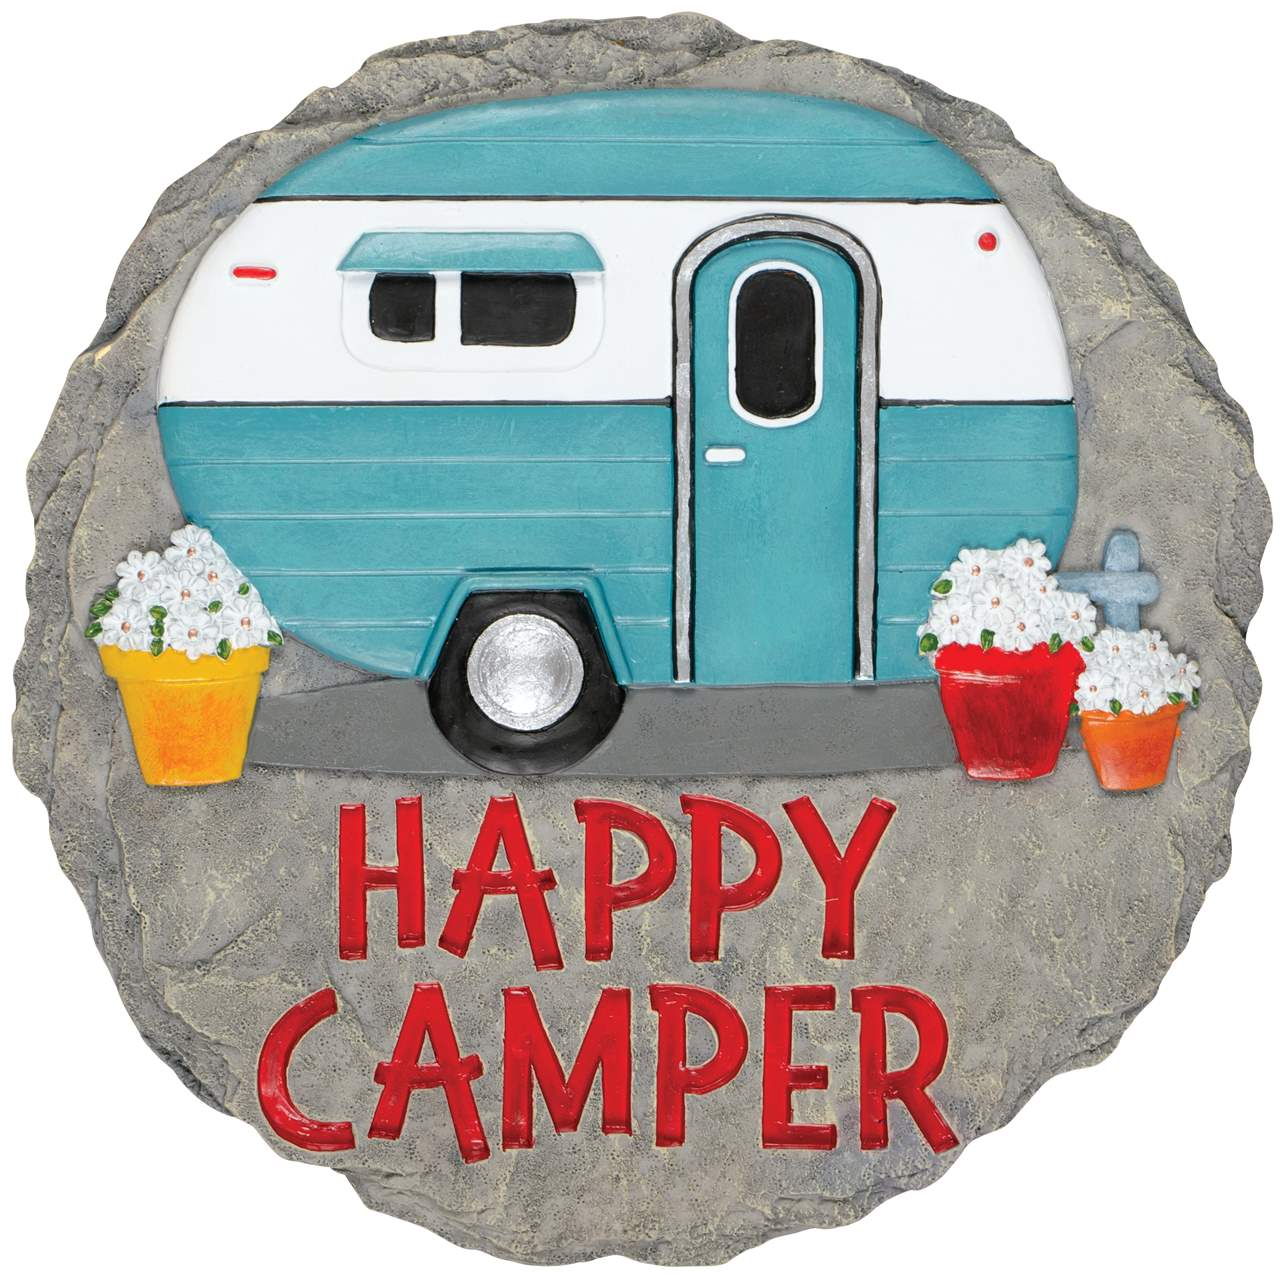 Happy Camper Stepping Stone